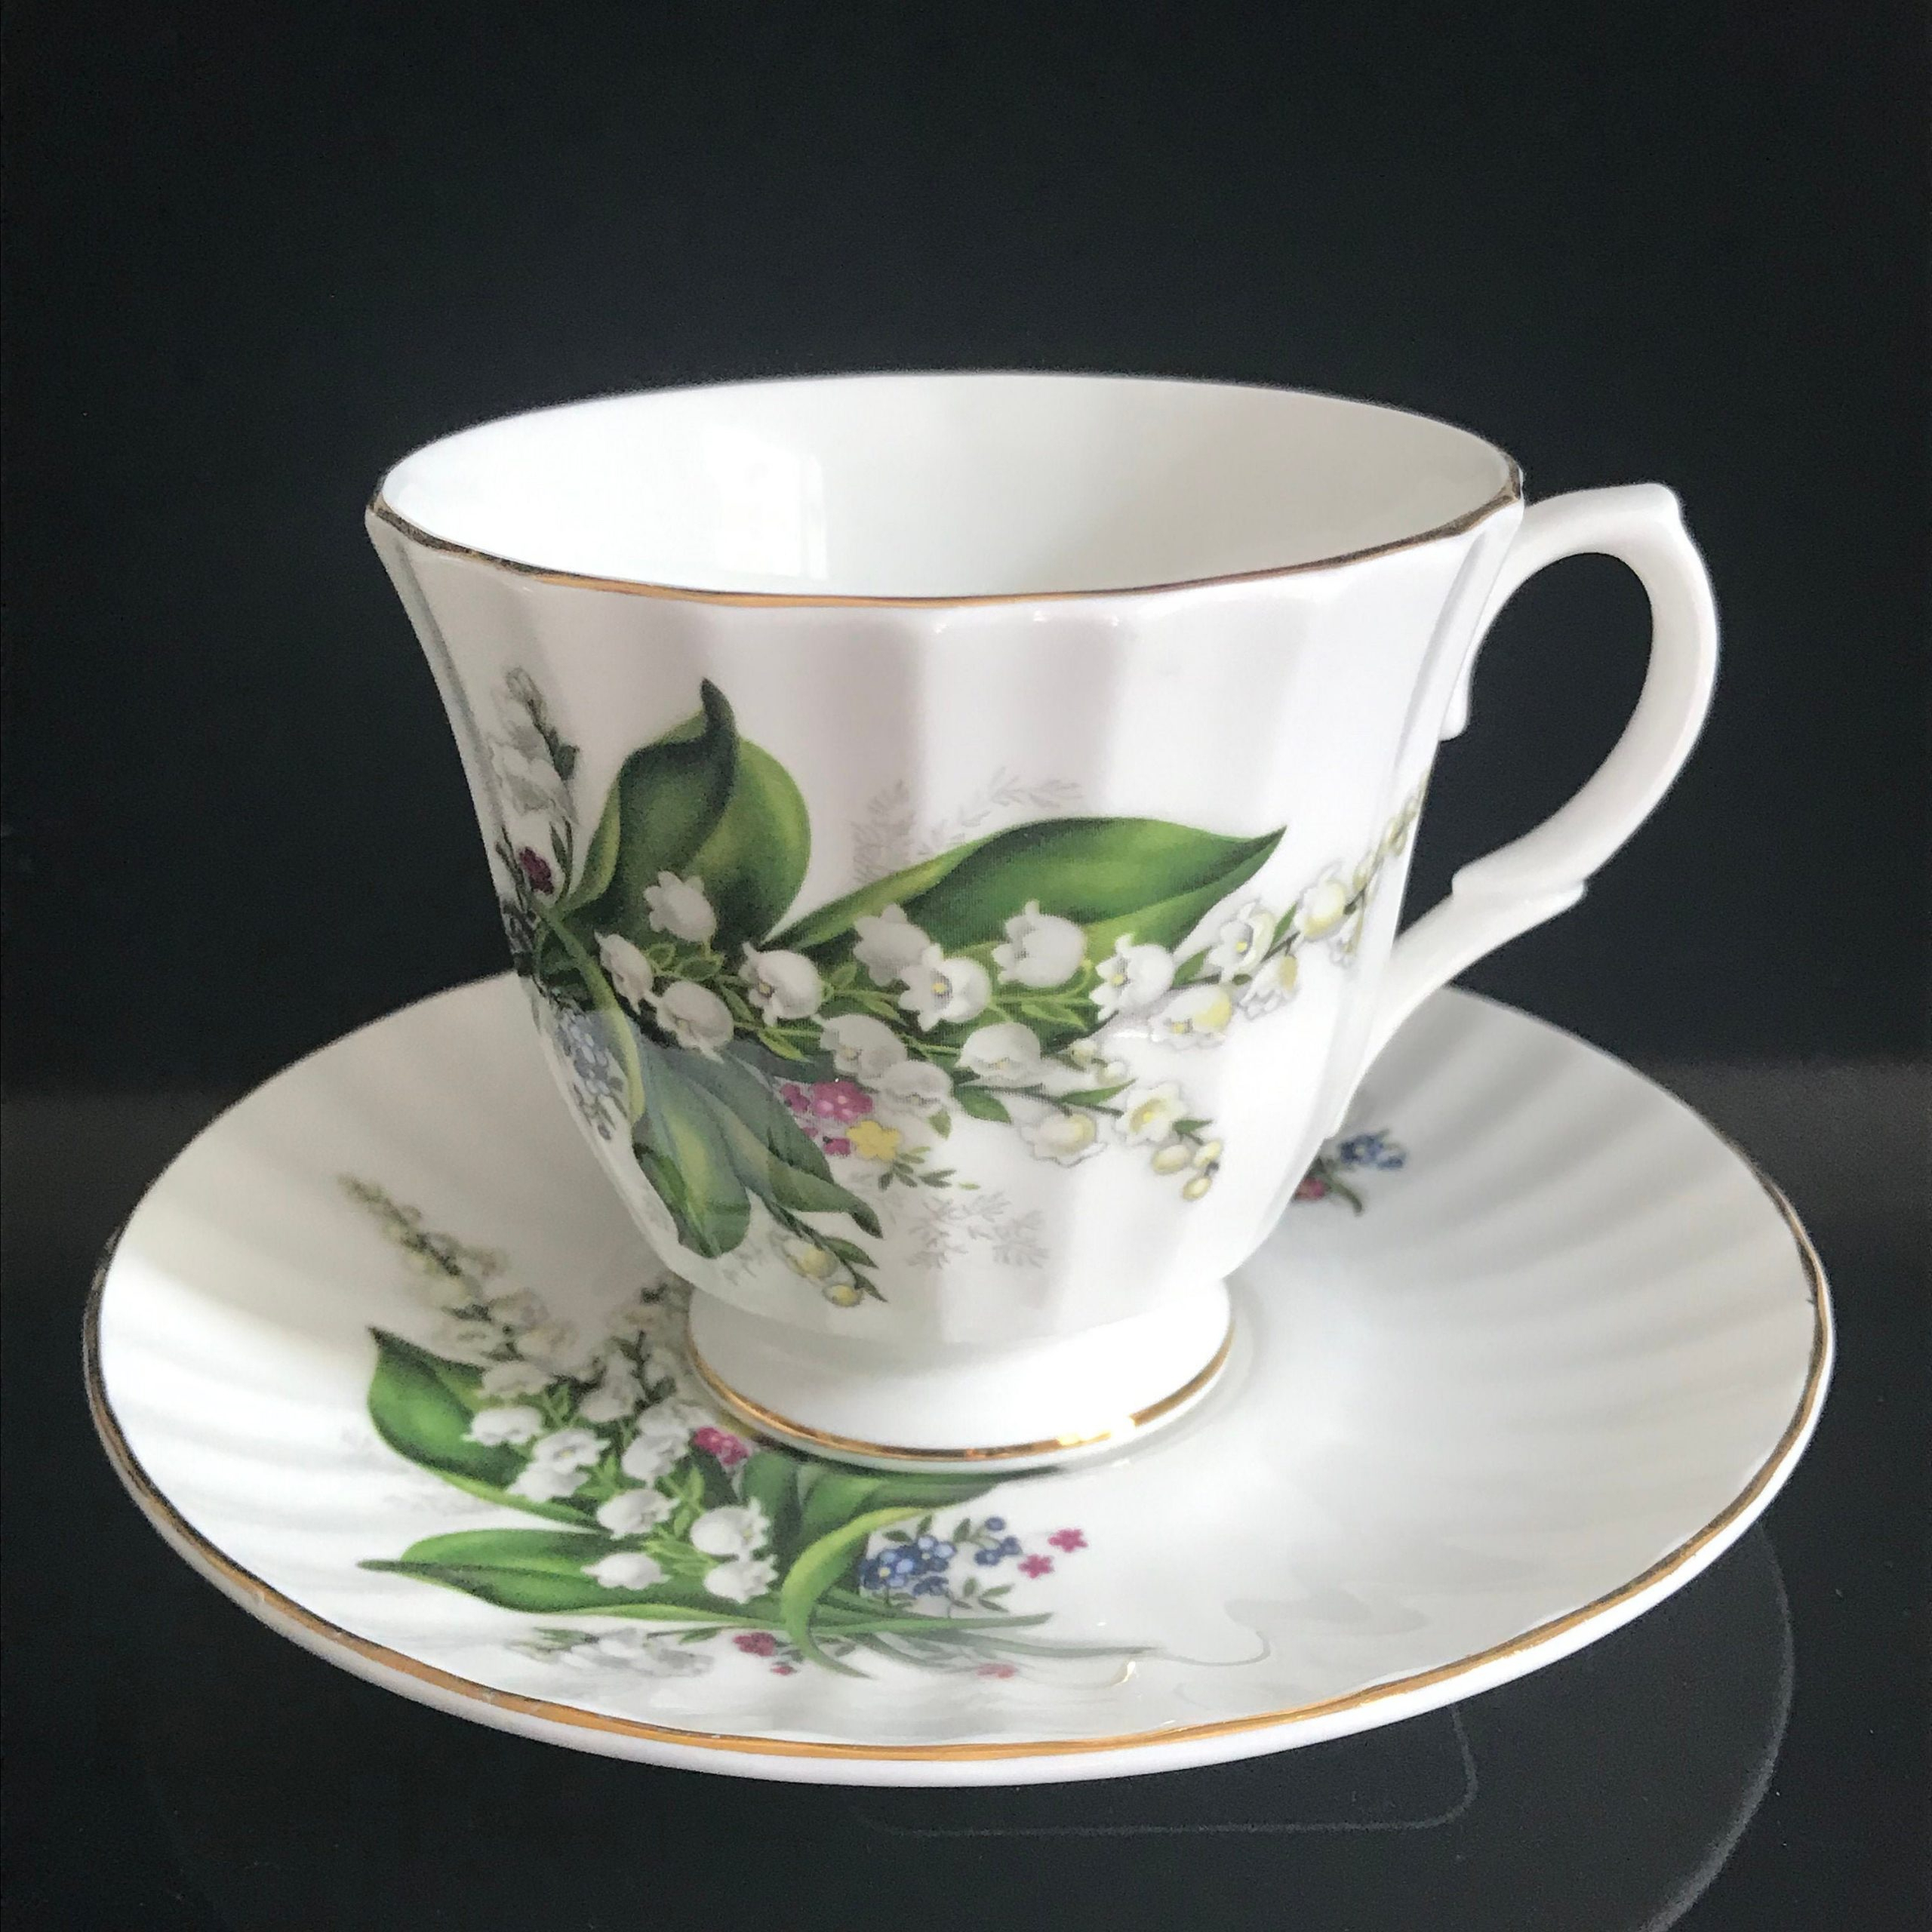 Staffordshire Tea Cup And Saucer England Fine Bone China Lily Of The Valley With Purple Yellow Flowers Farmhouse Collectible Display Carol S True Vintage And Antiques